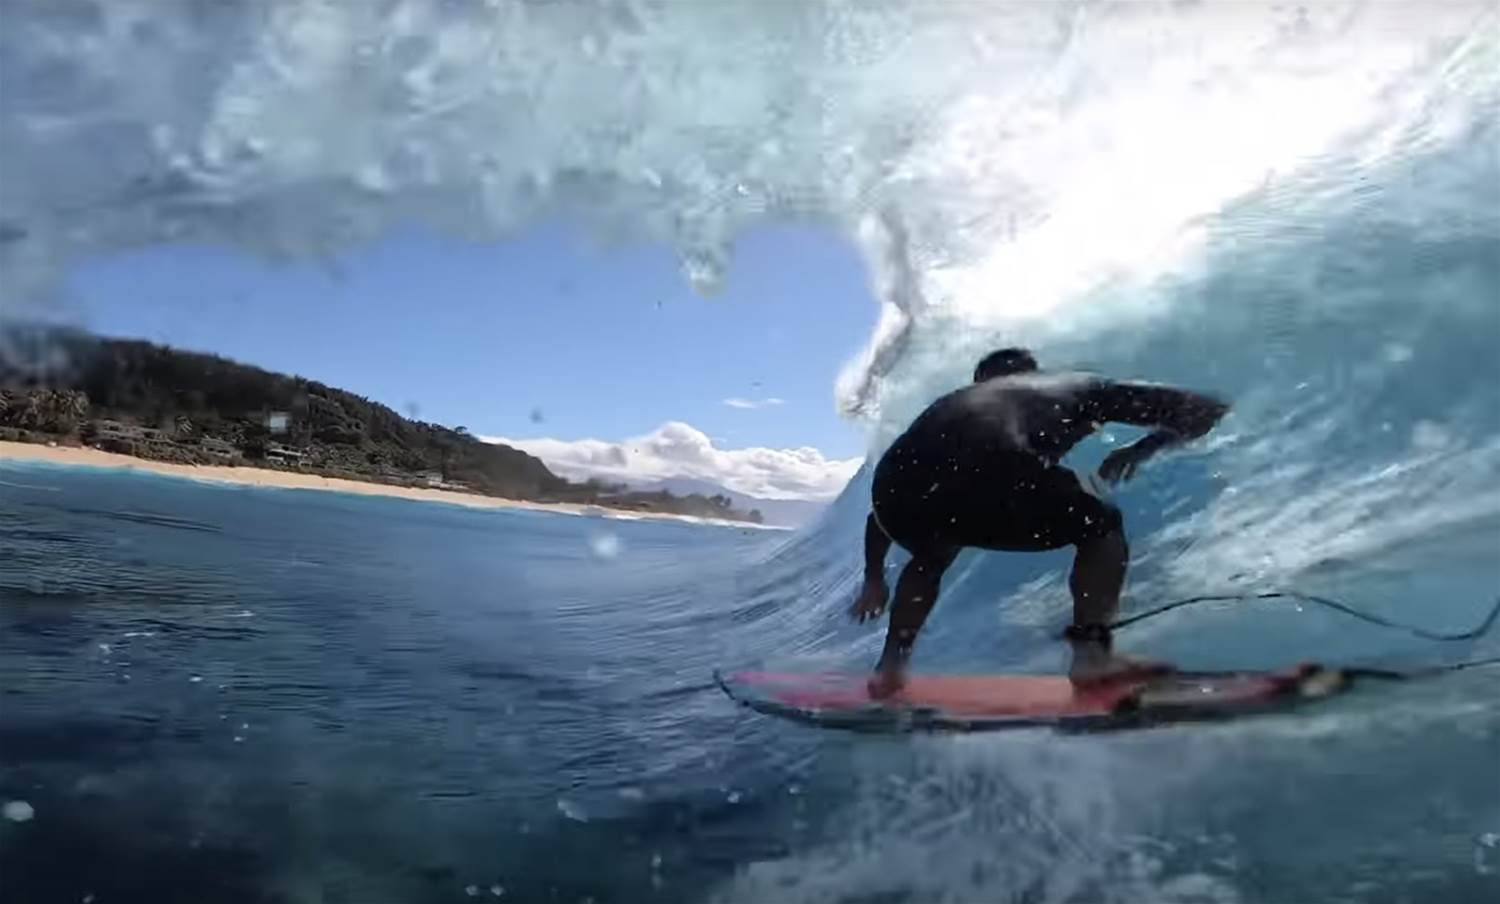 Join Nate Florence In Some Sublime Backdoor Tubes!